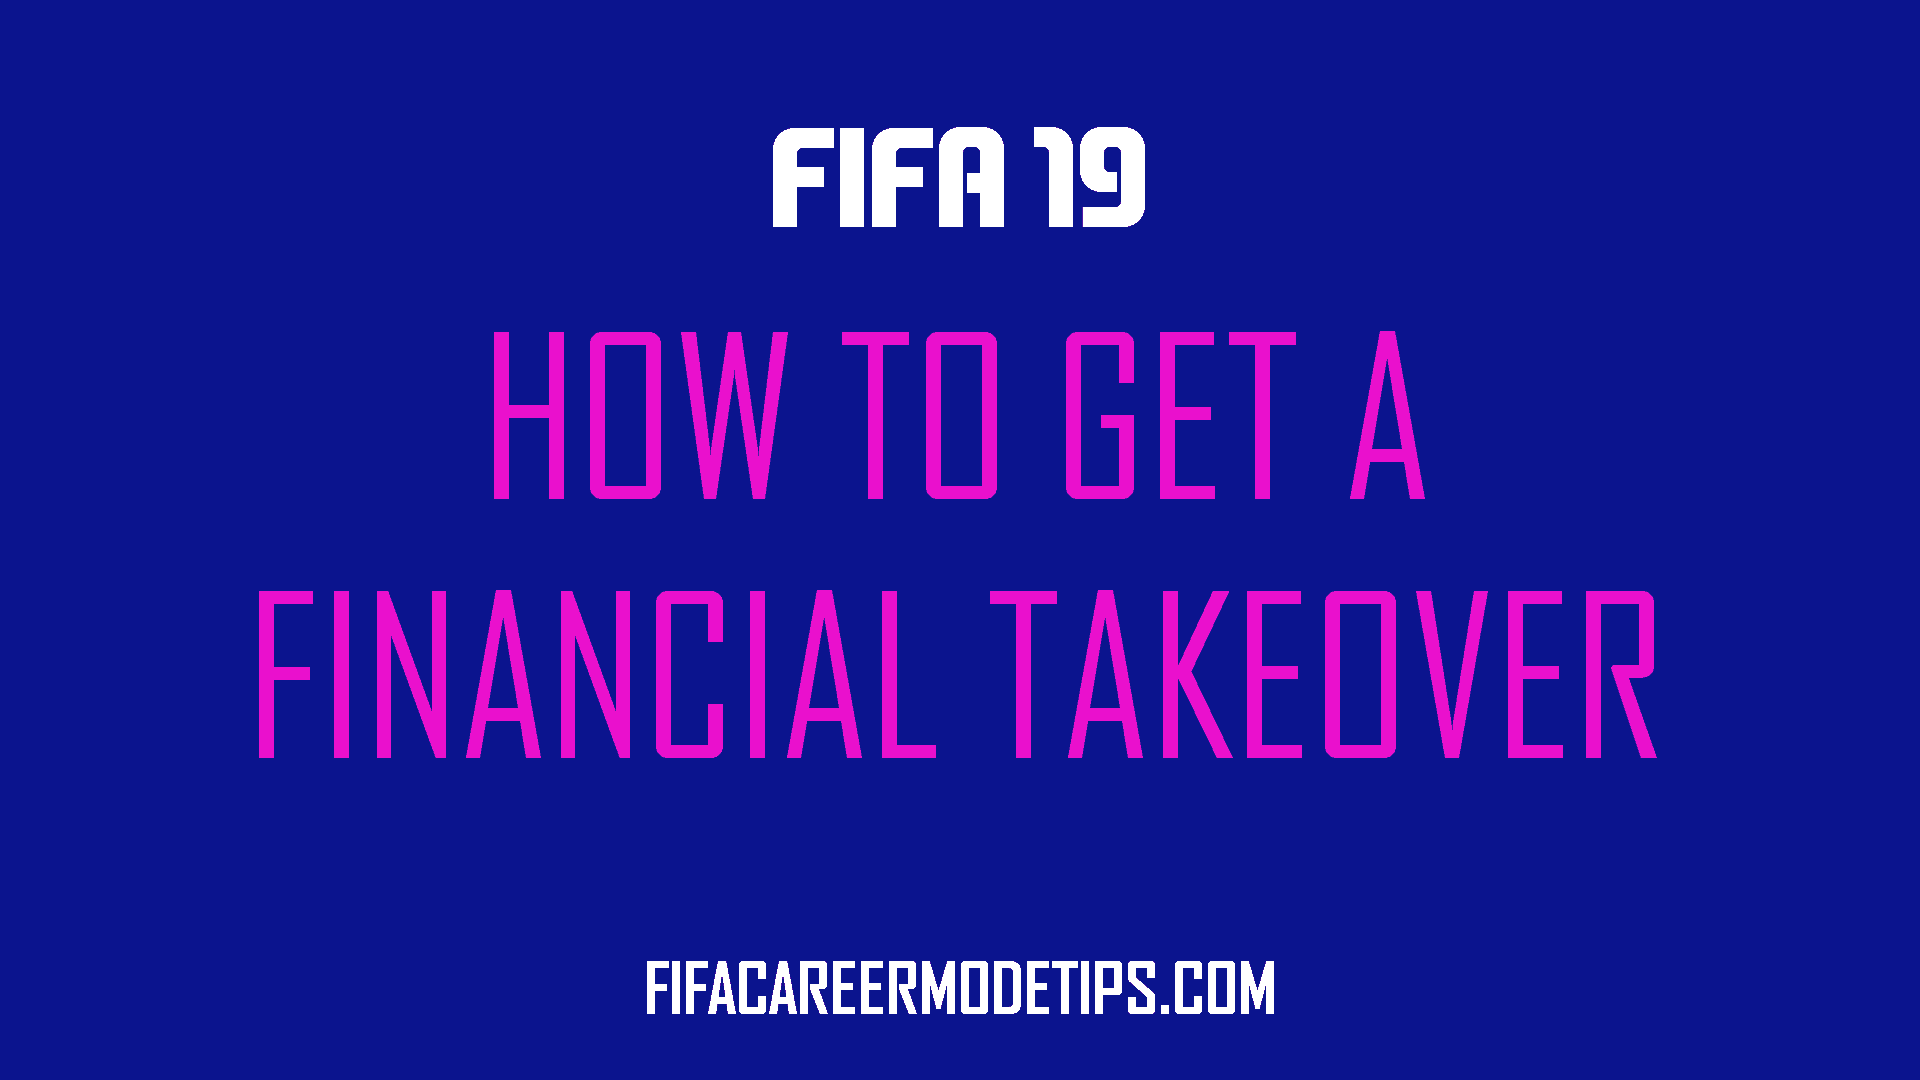 Financial Takeover FIFA 19